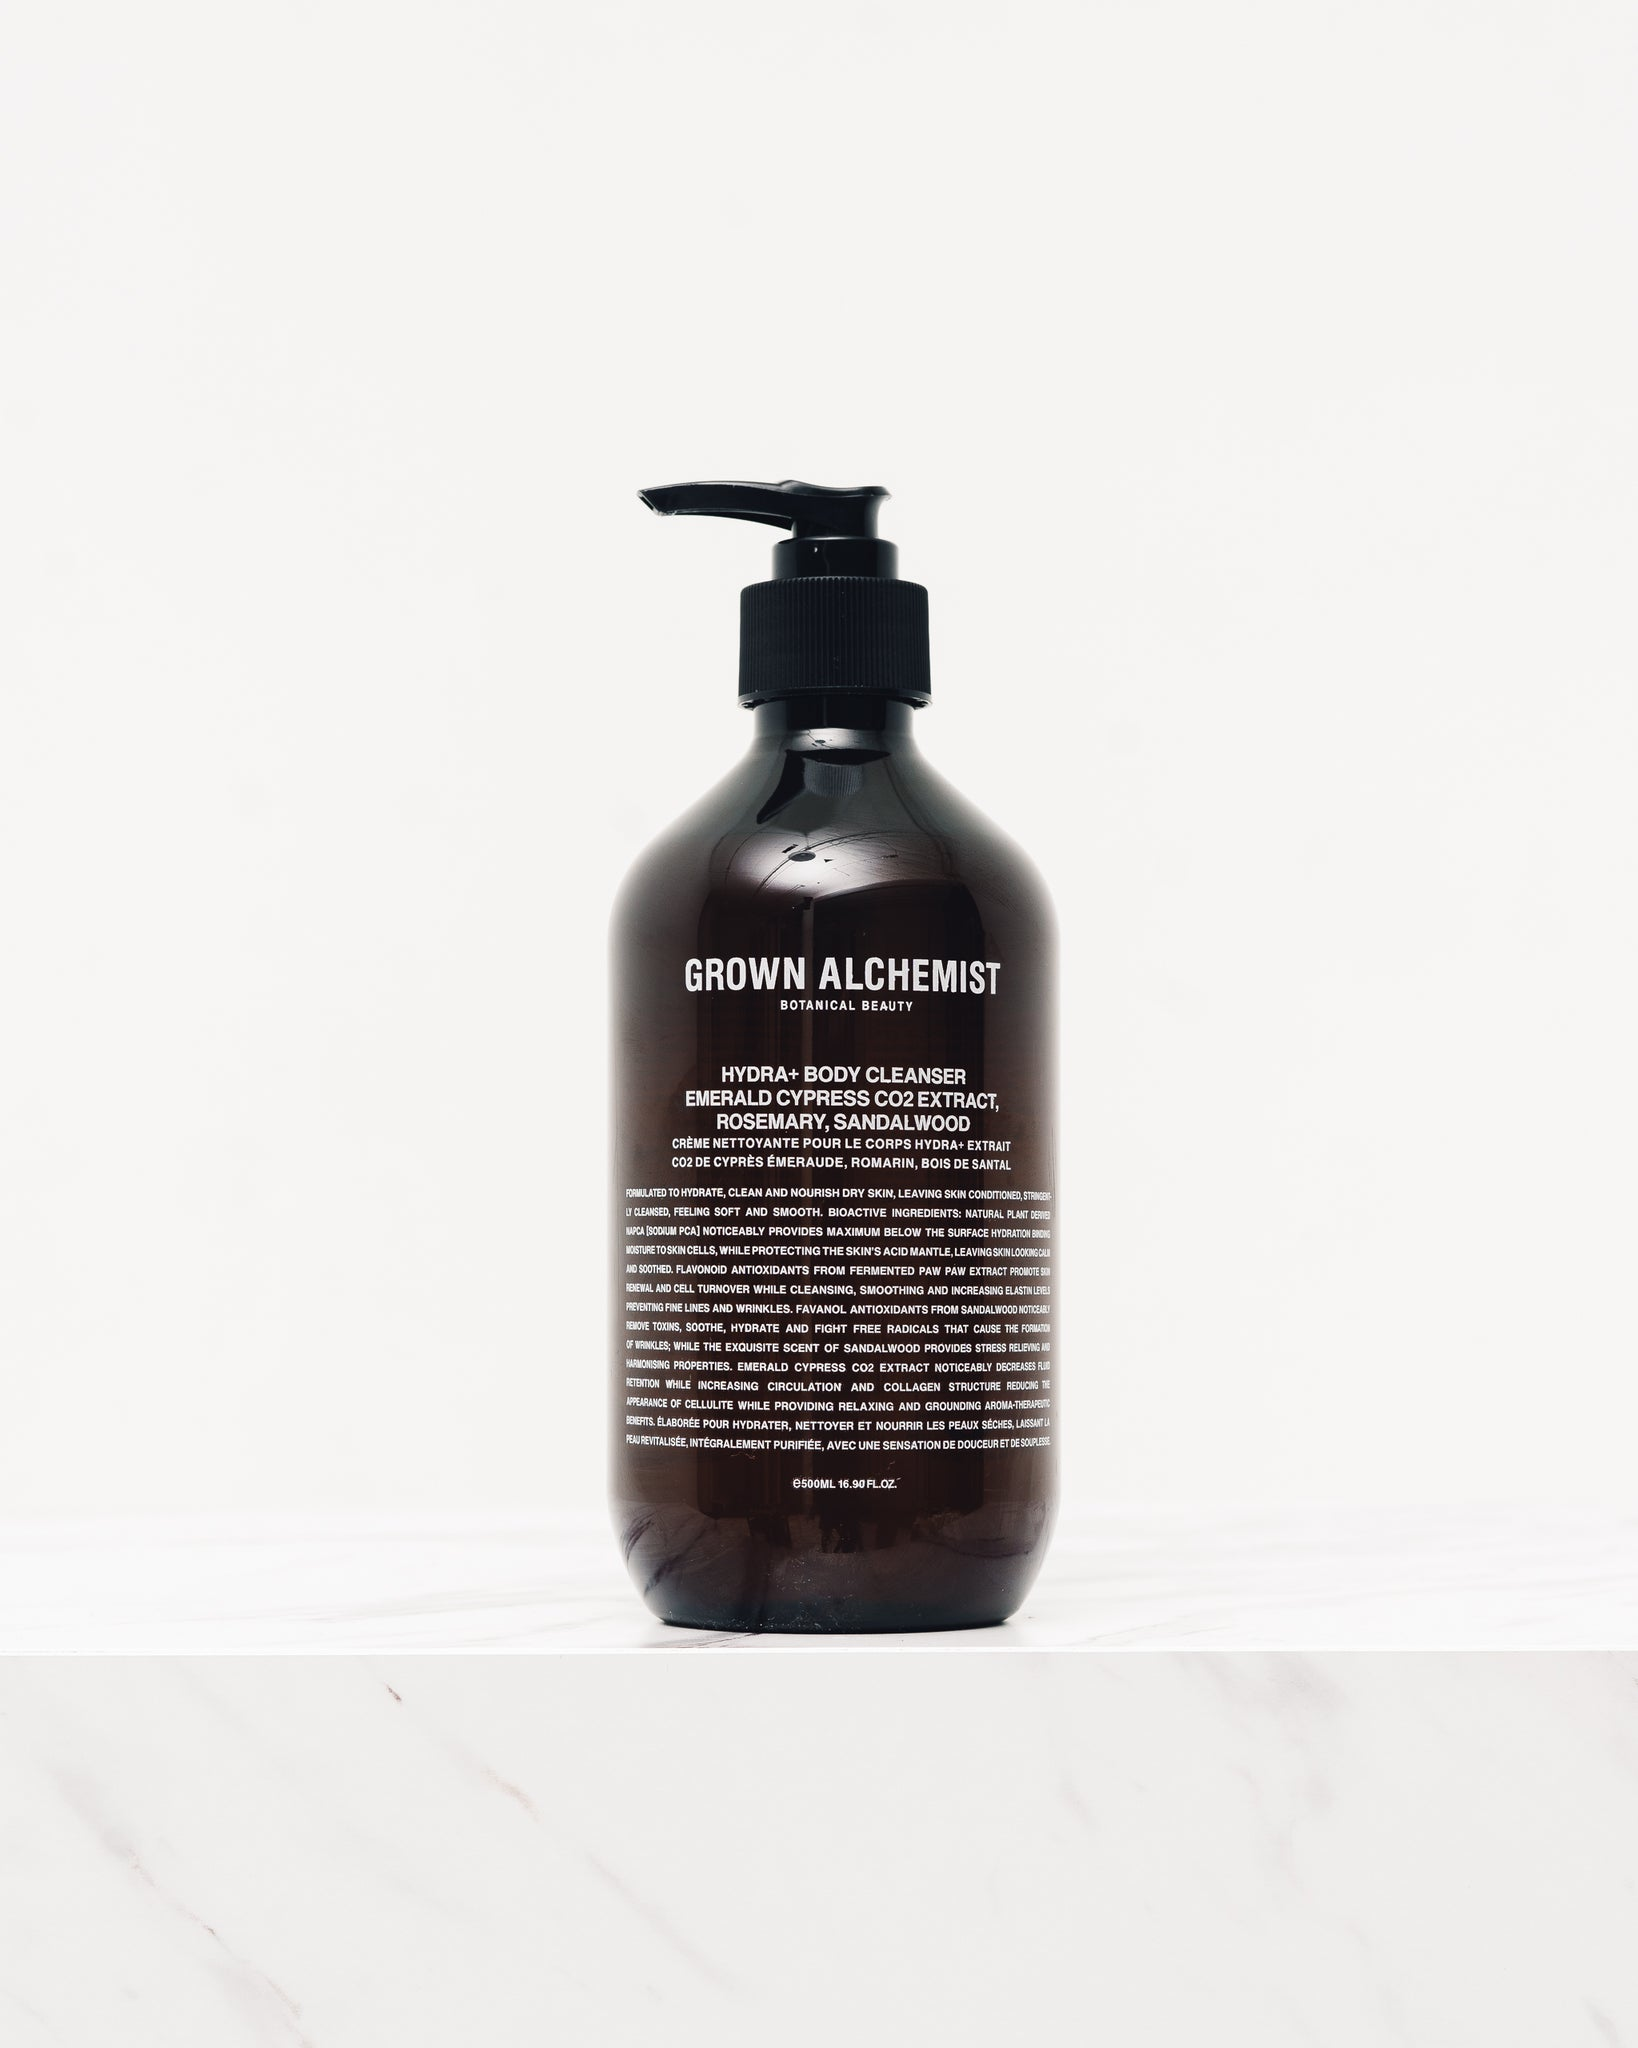 Grown Alchemist Hydra+ Body Cleanser